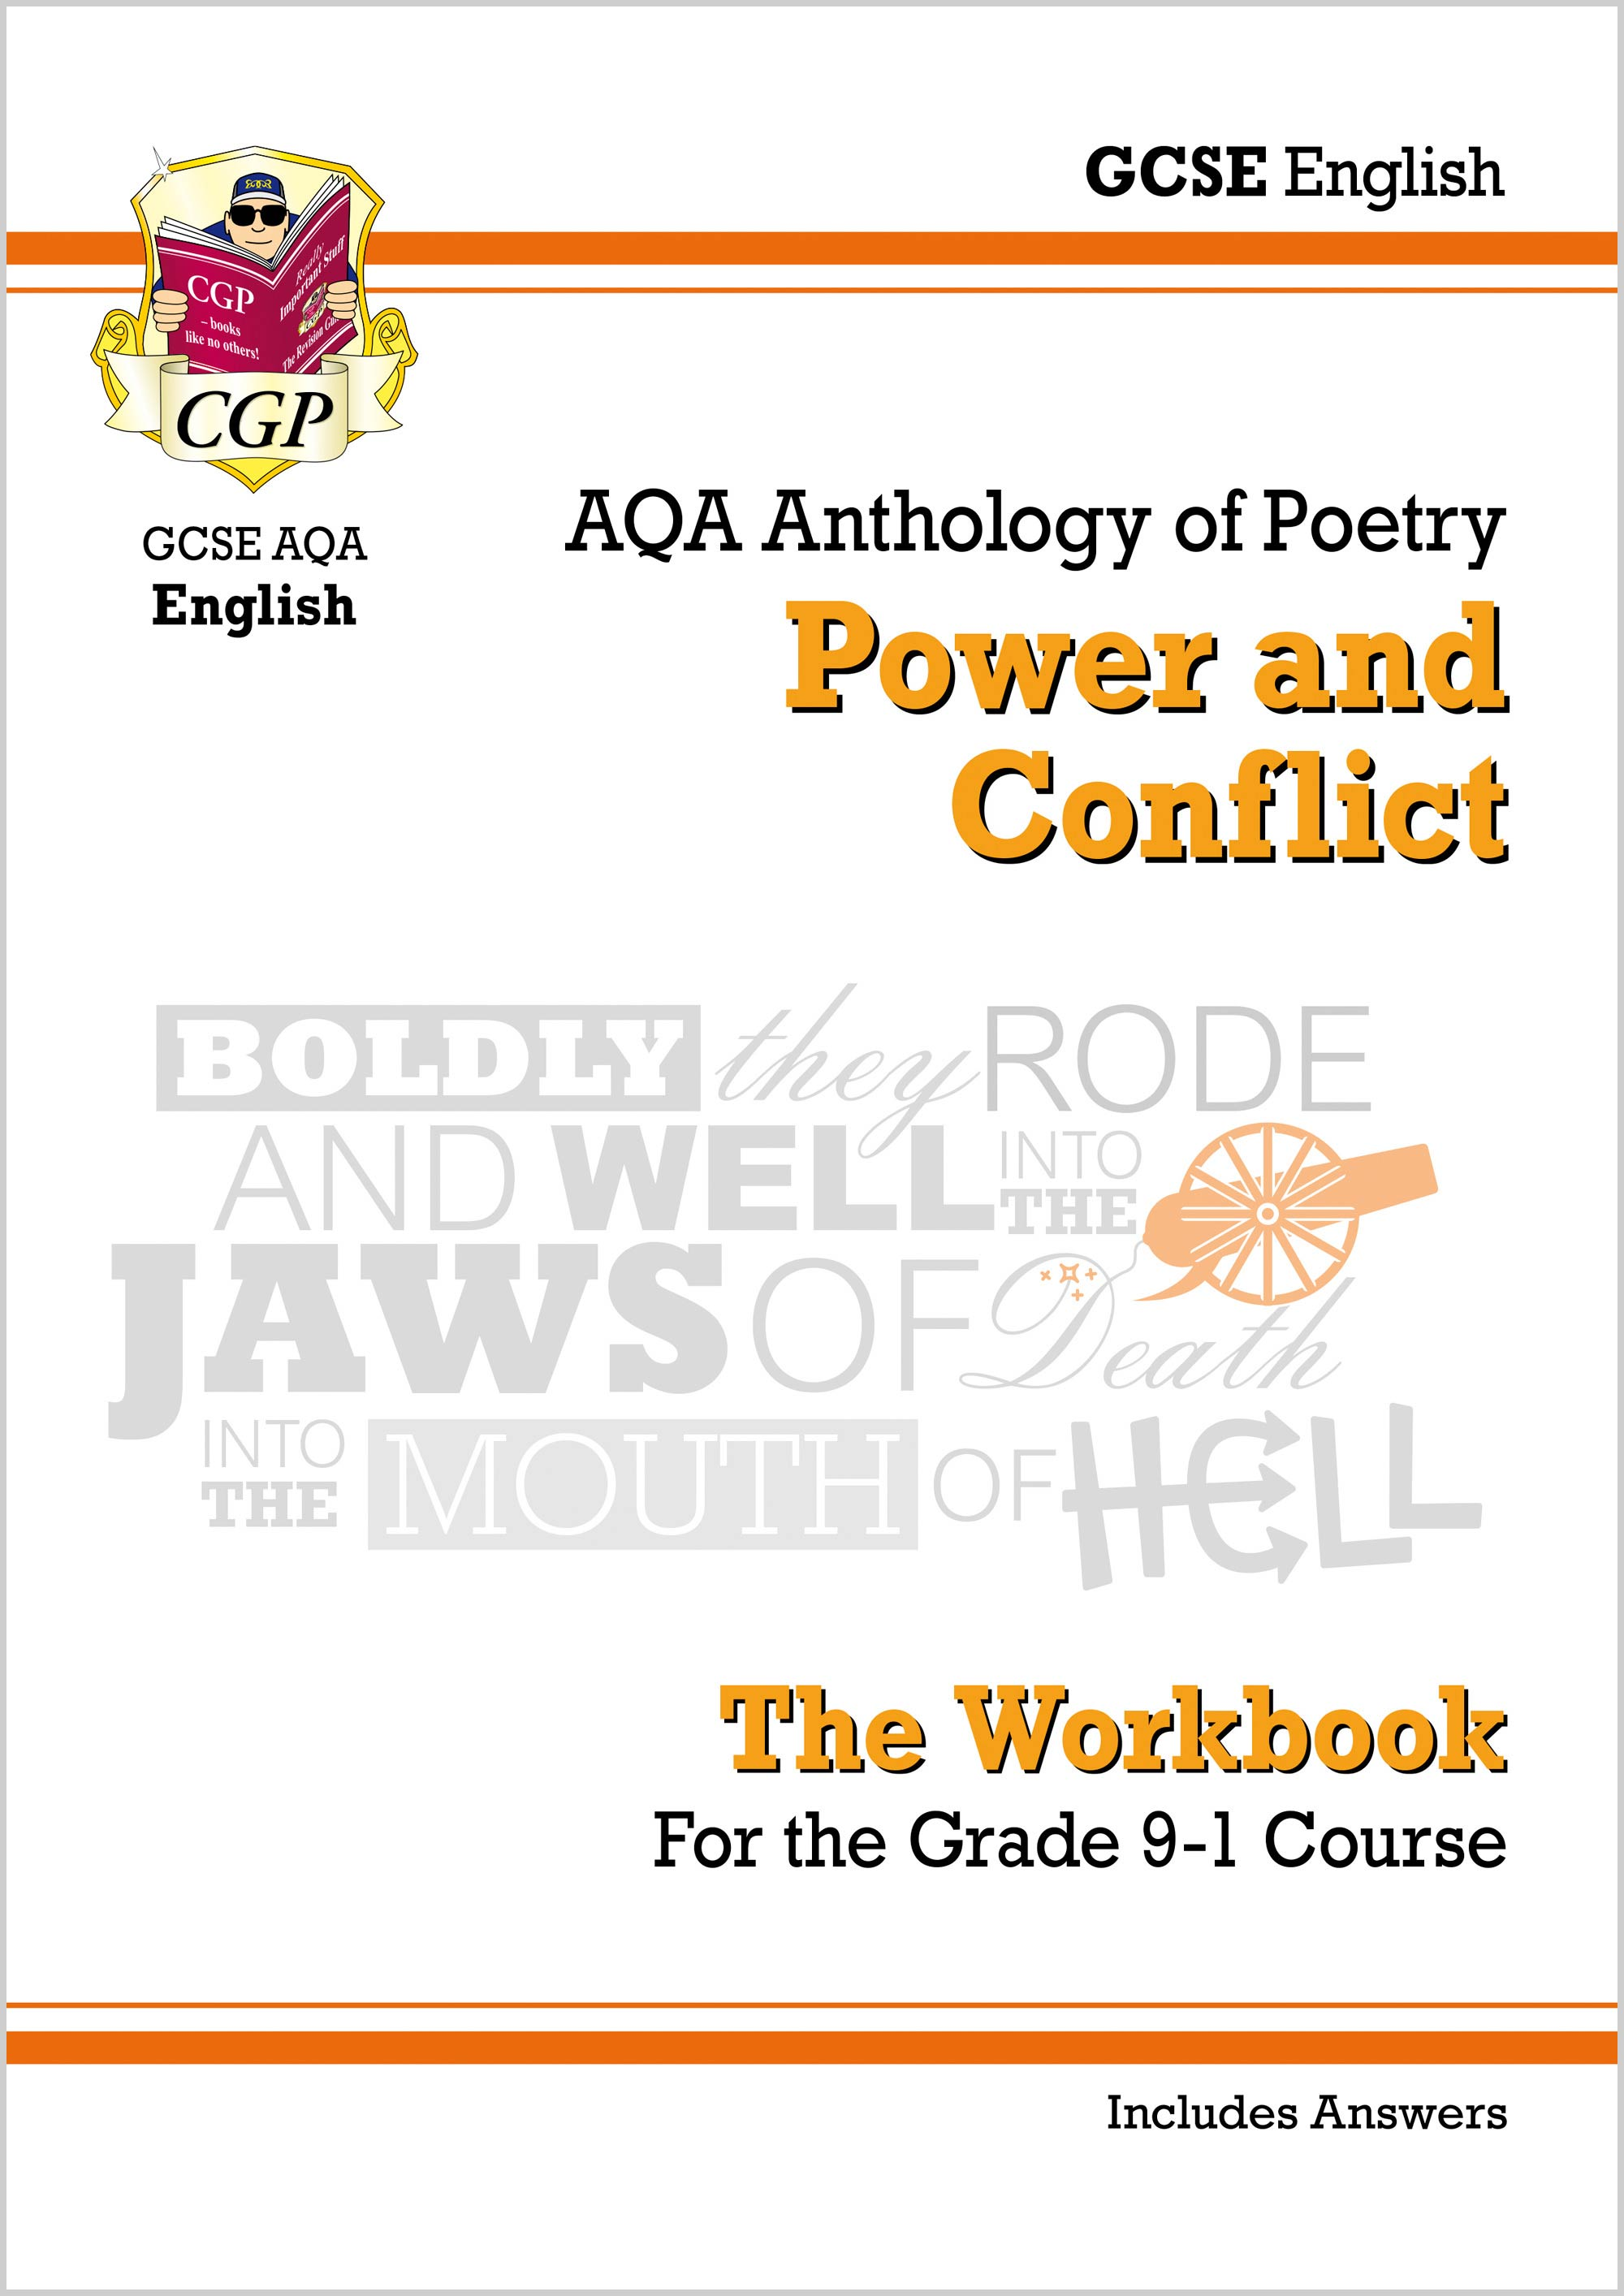 ACHW42DK - New GCSE English Literature AQA Poetry Workbook: Power & Conflict Anthology (includes Ans